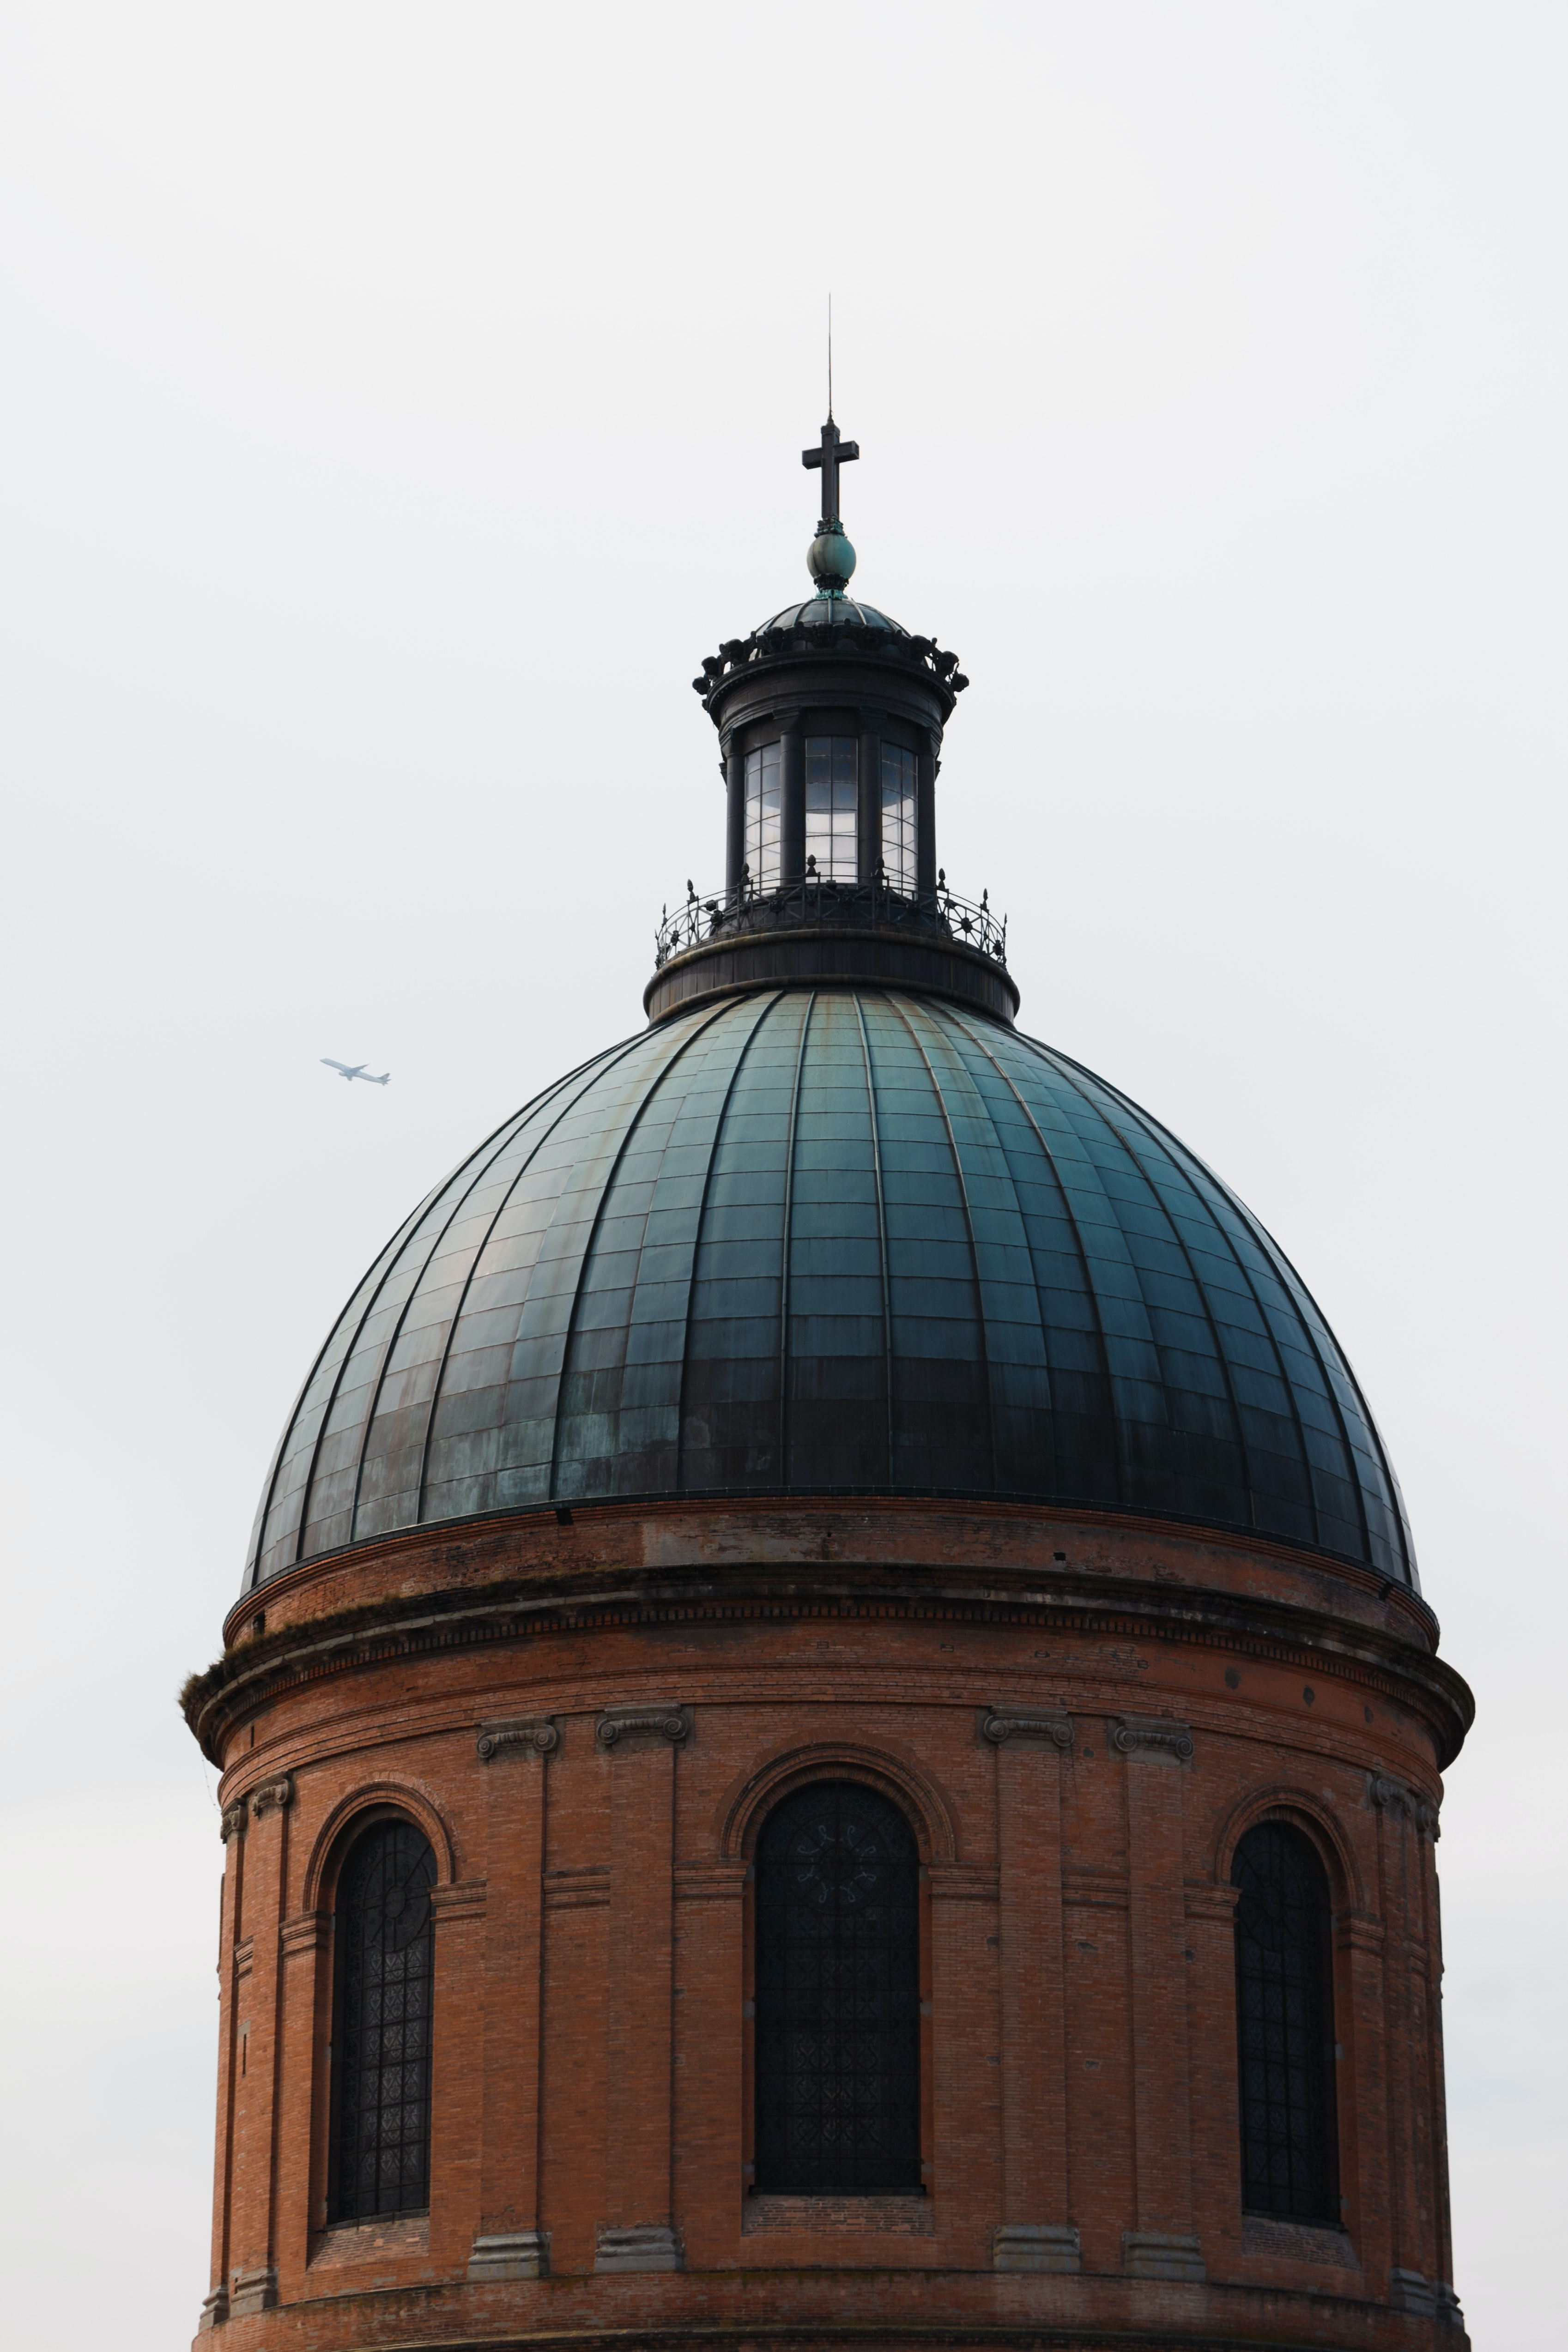 brown dome building at daytime